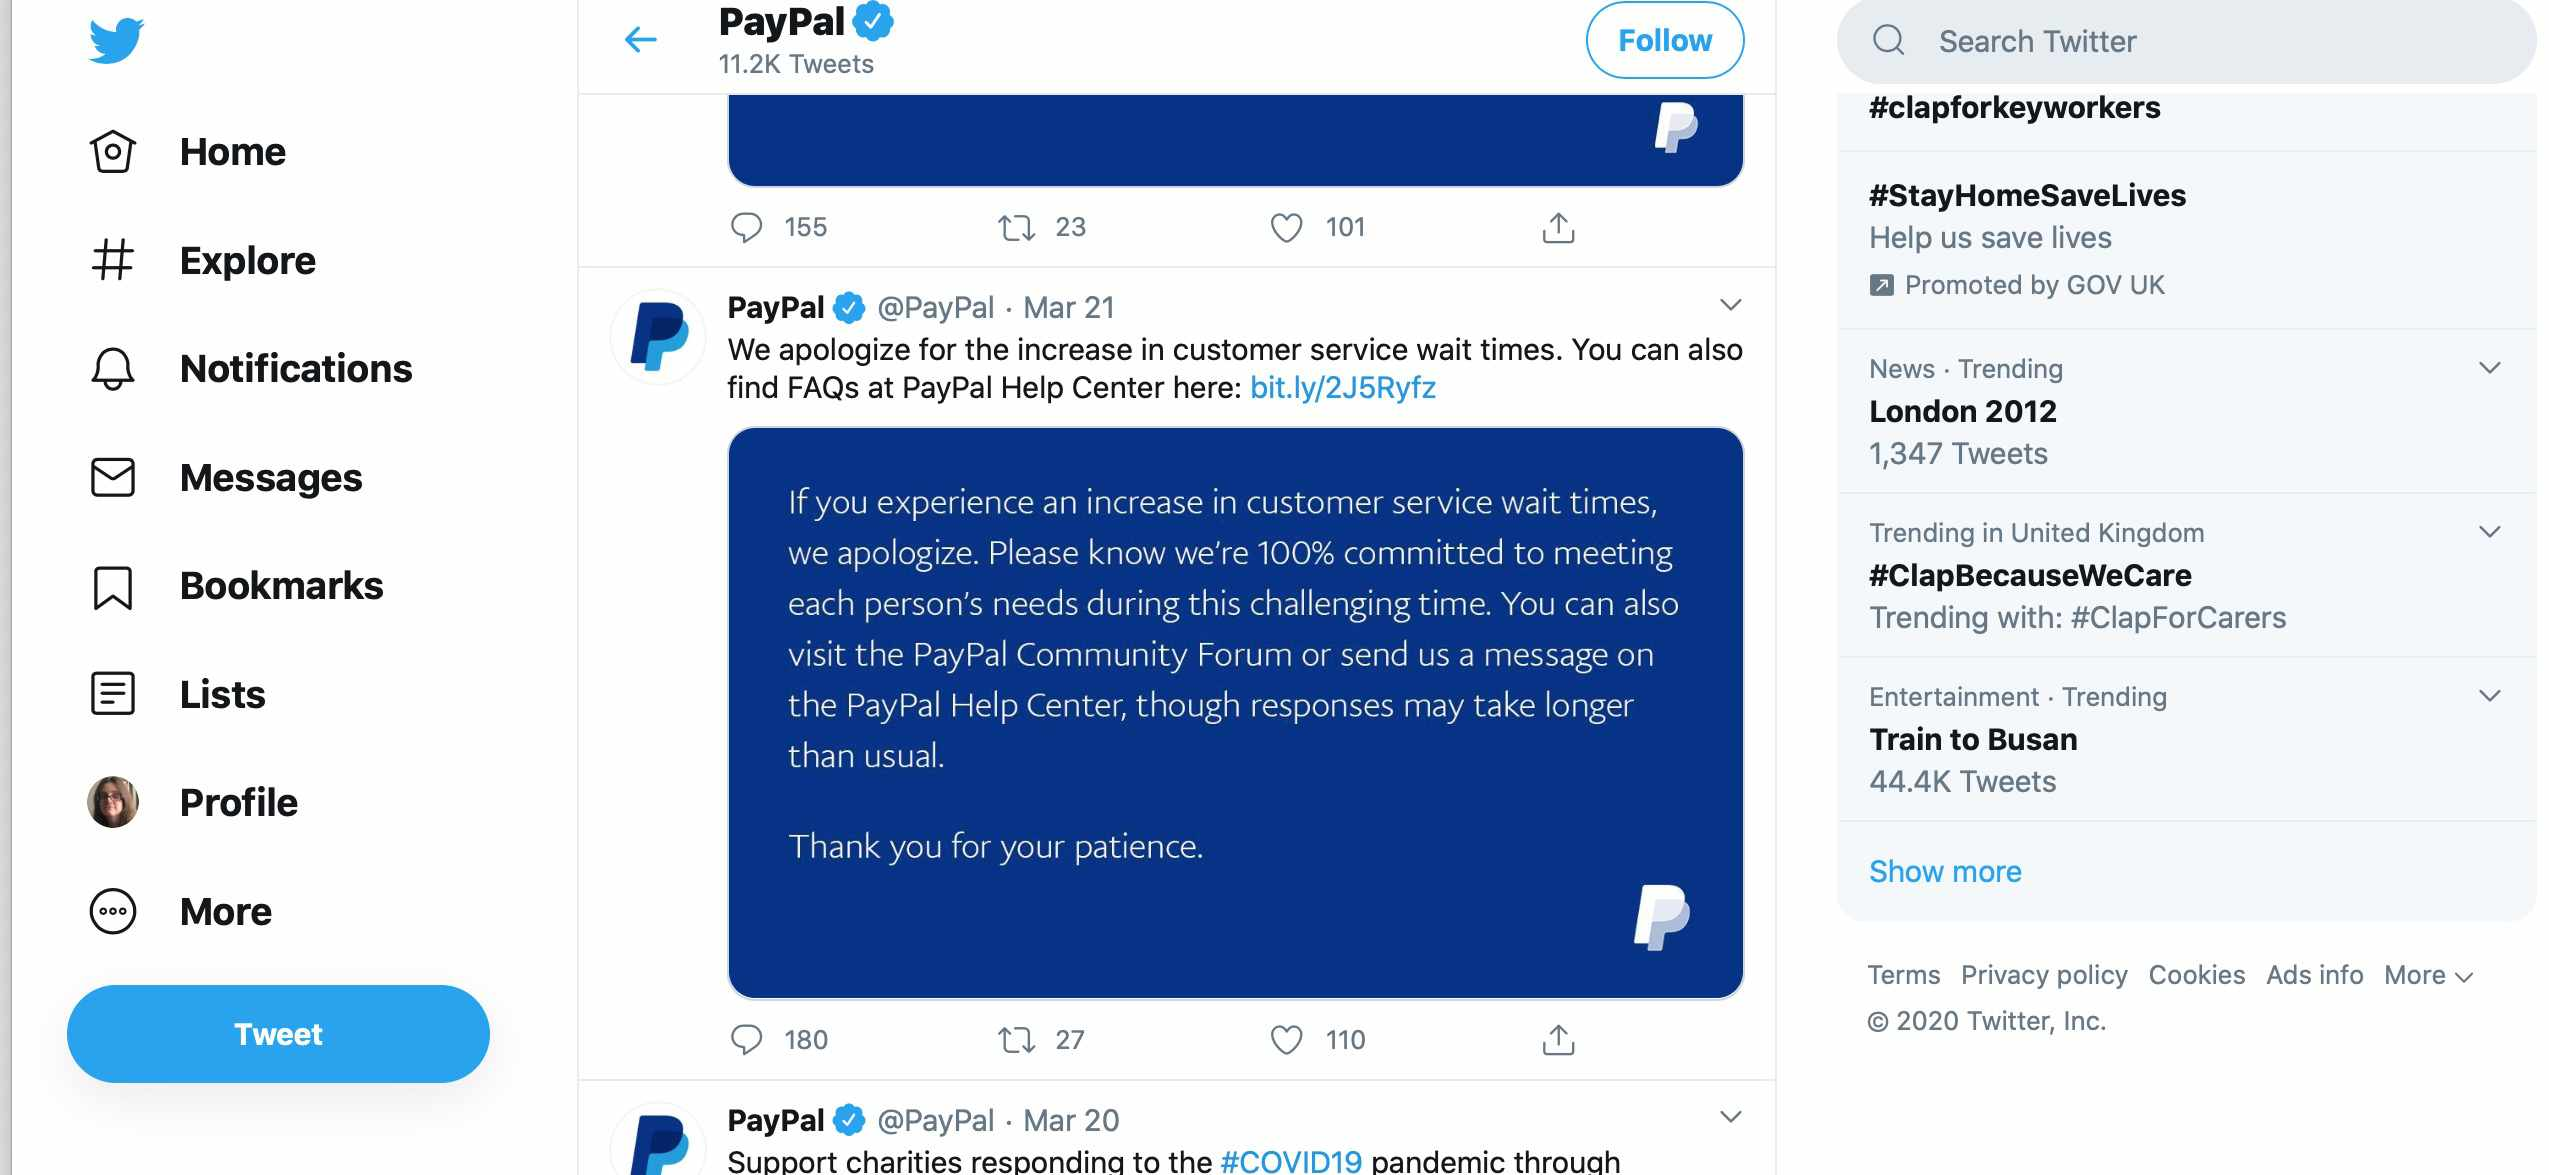 Paypal Twitter account